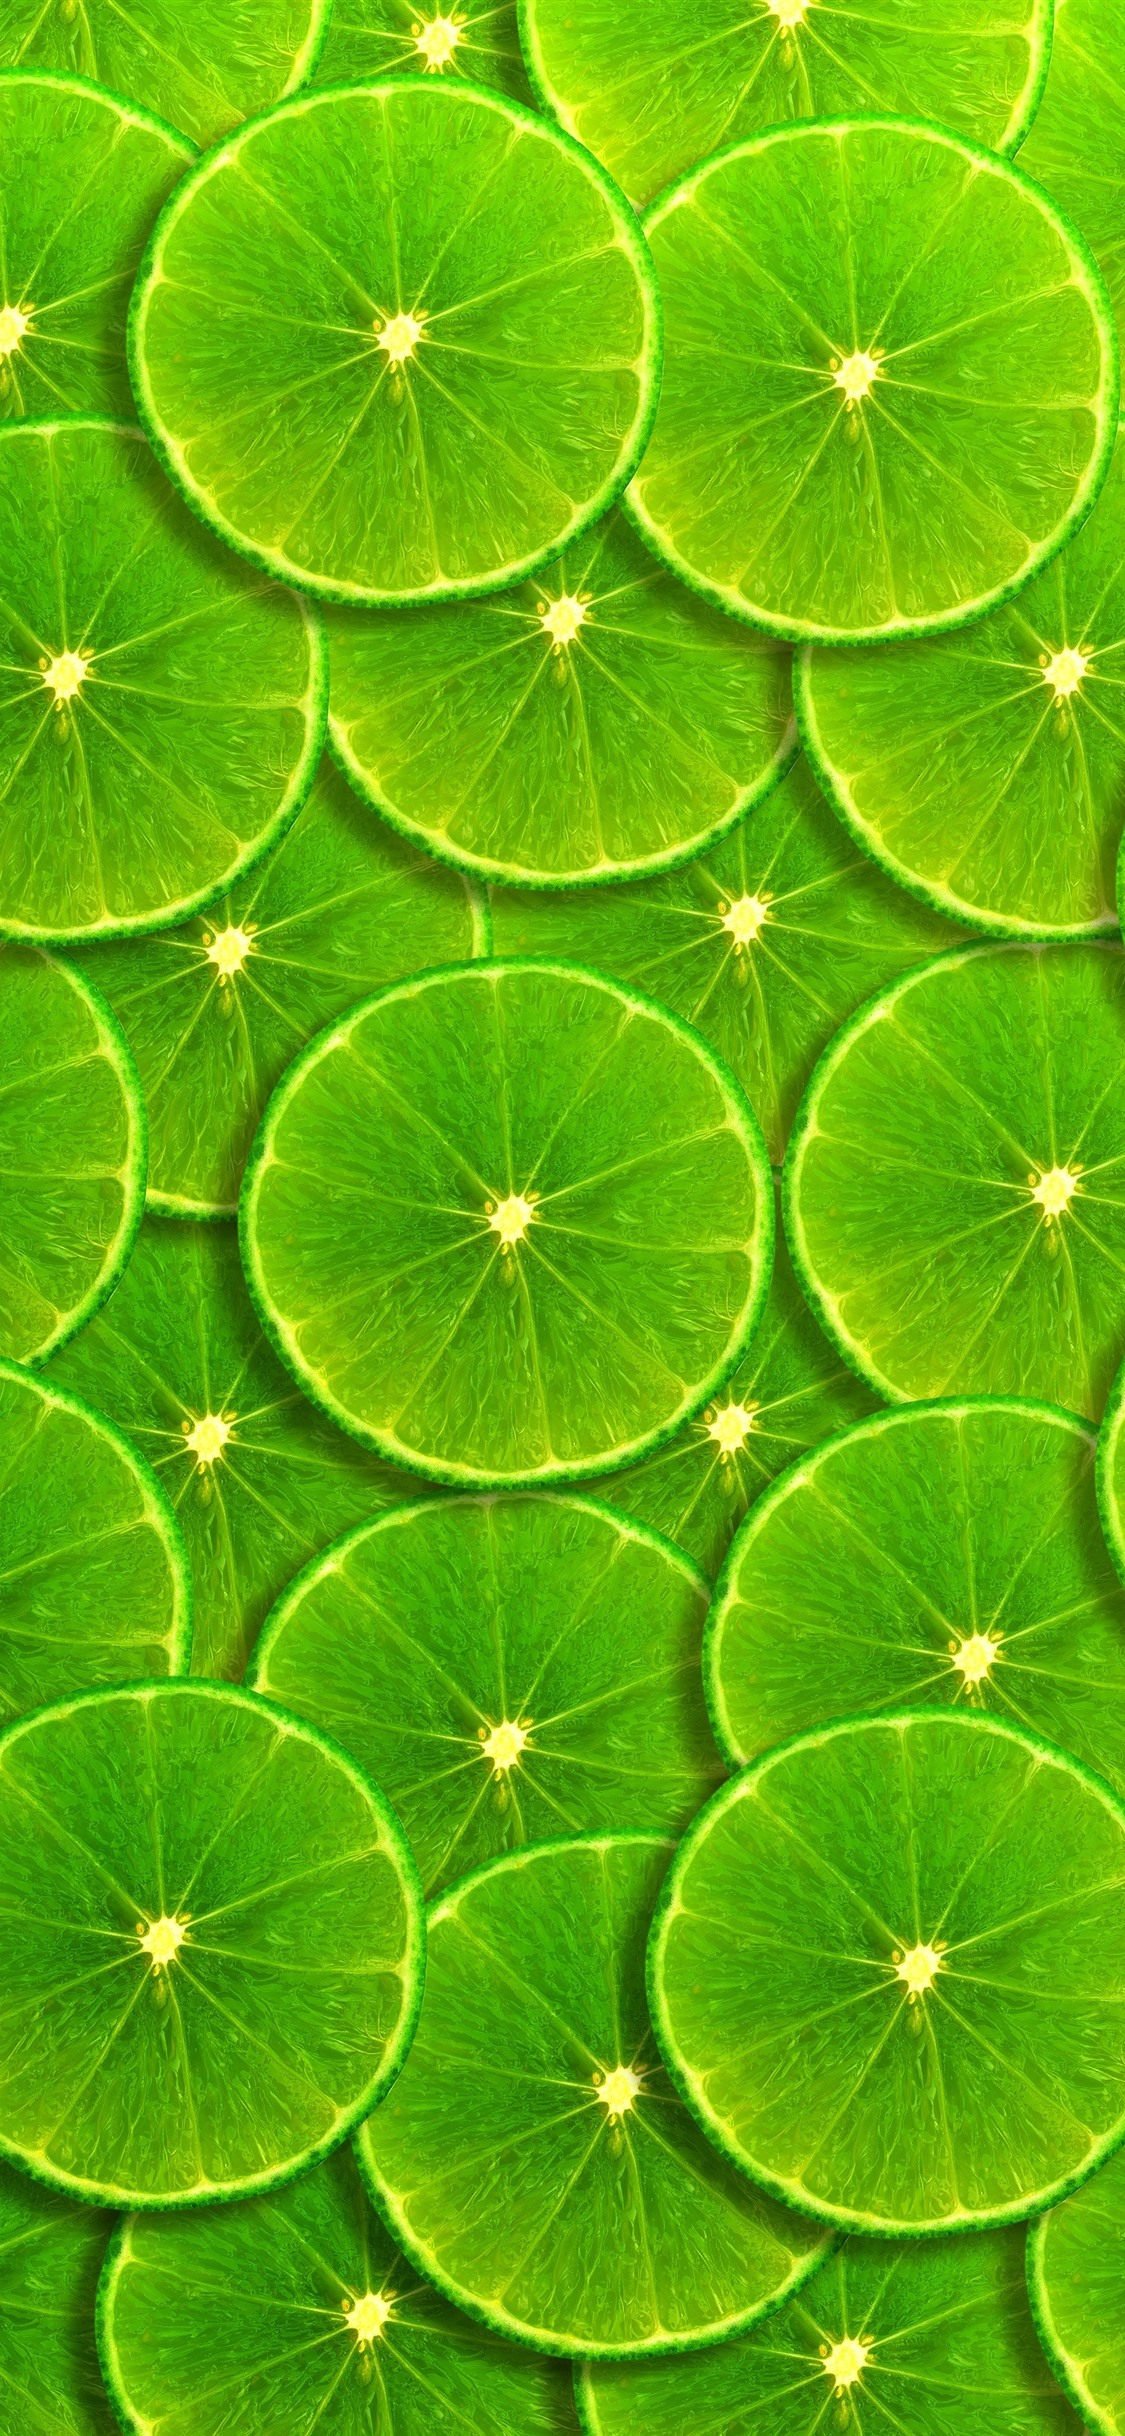 Green Lemon Slices Background 1125x2436 Iphone Xsx Wallpaper